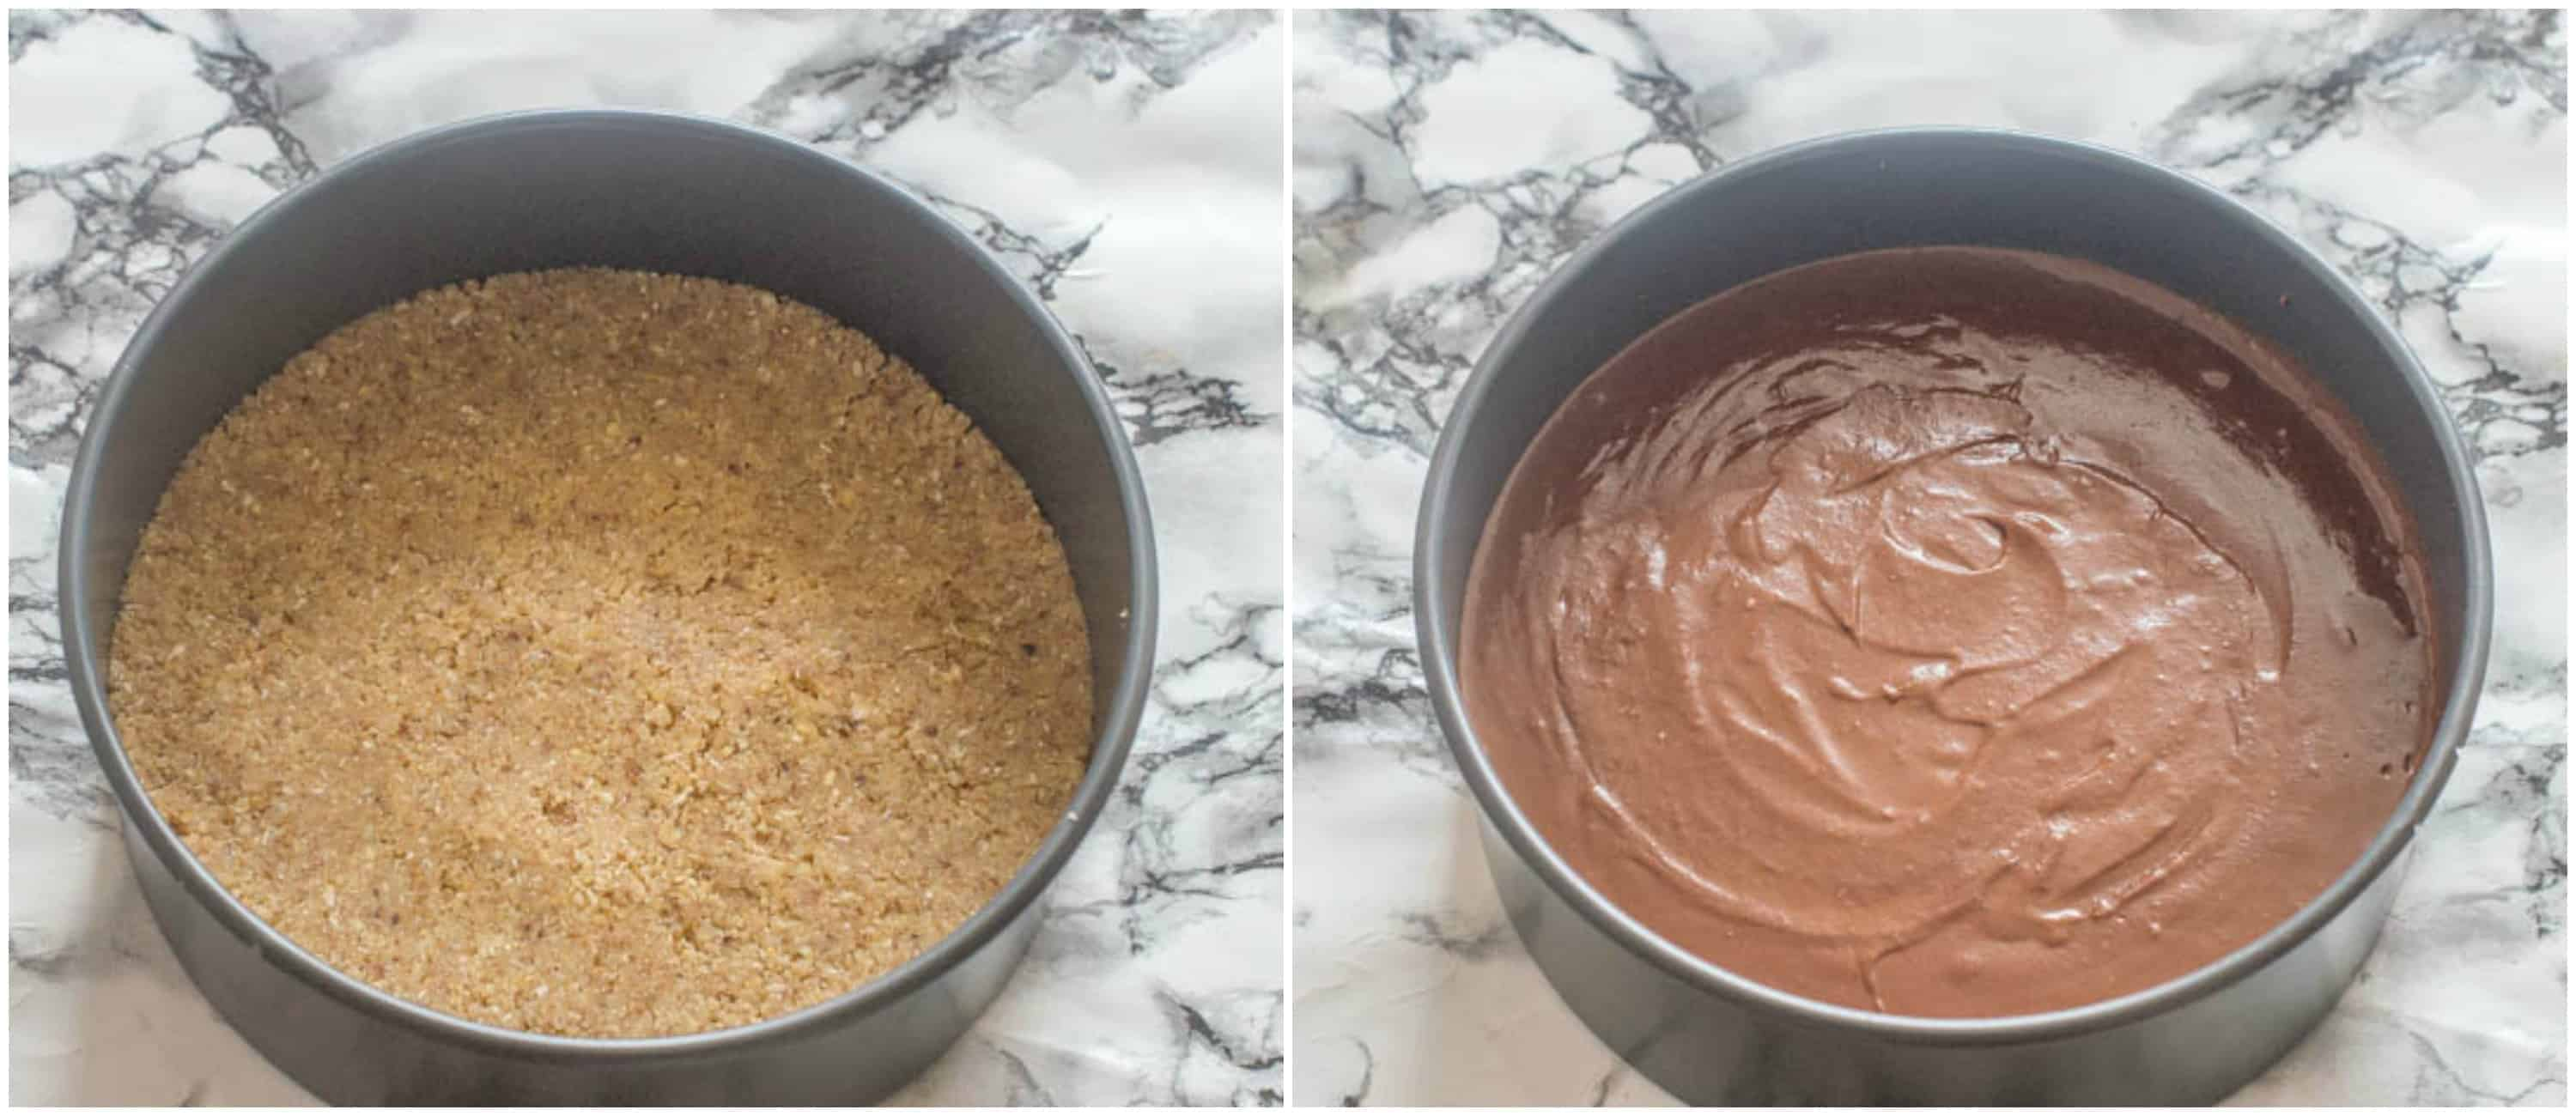 No bake chocolate cheesecake steps 1-2